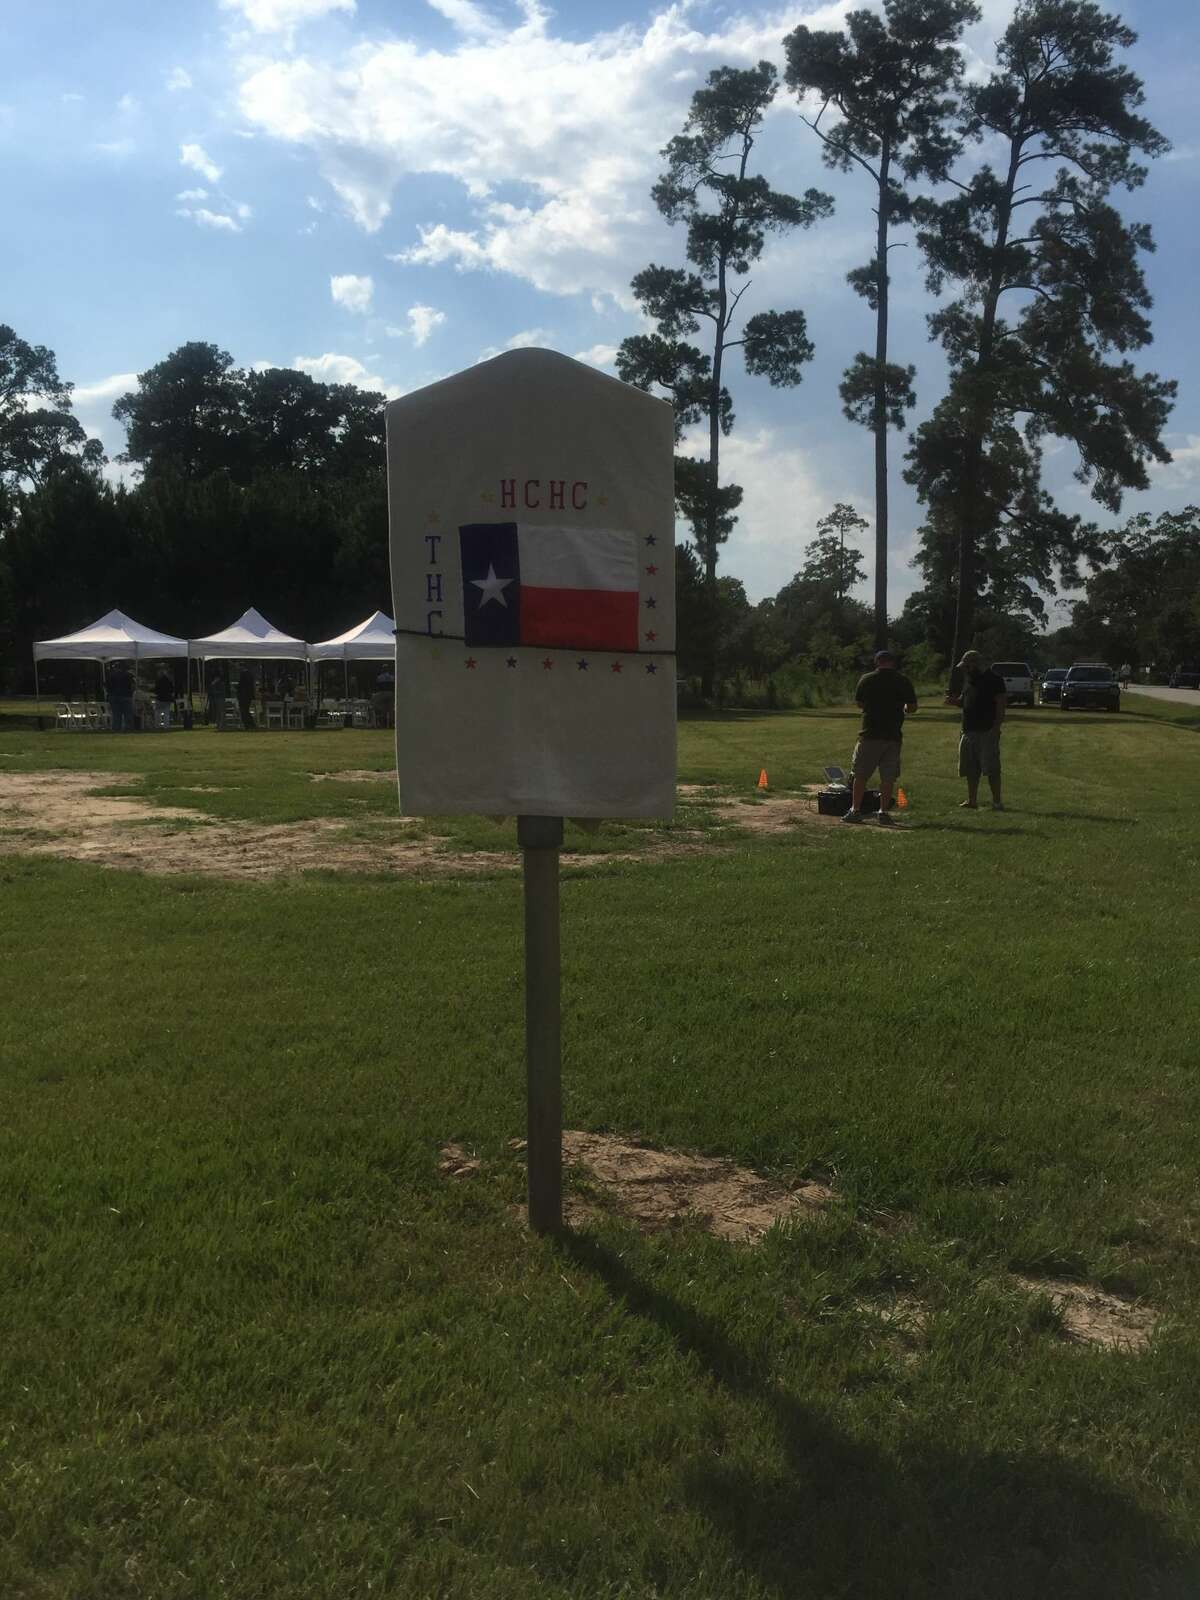 The Texas Historical Commission marker honoring Camp Logan, which stands on the edge of Memorial Park, was rededicated on Aug. 23, 2017 following repairs.